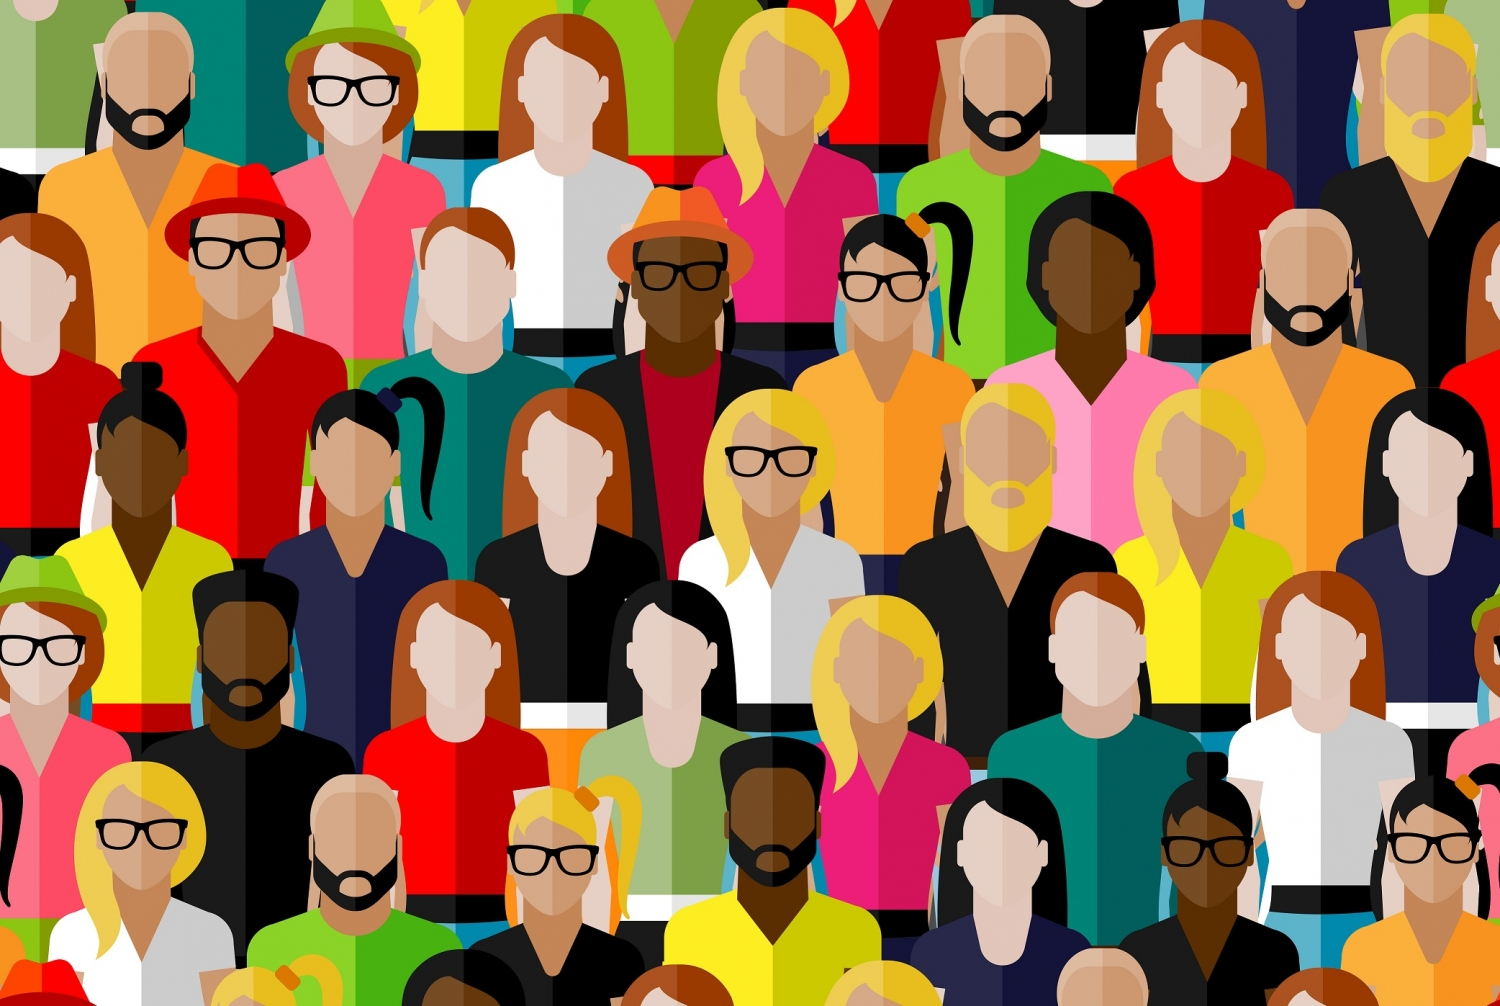 a vector illustration of a crowd of people.